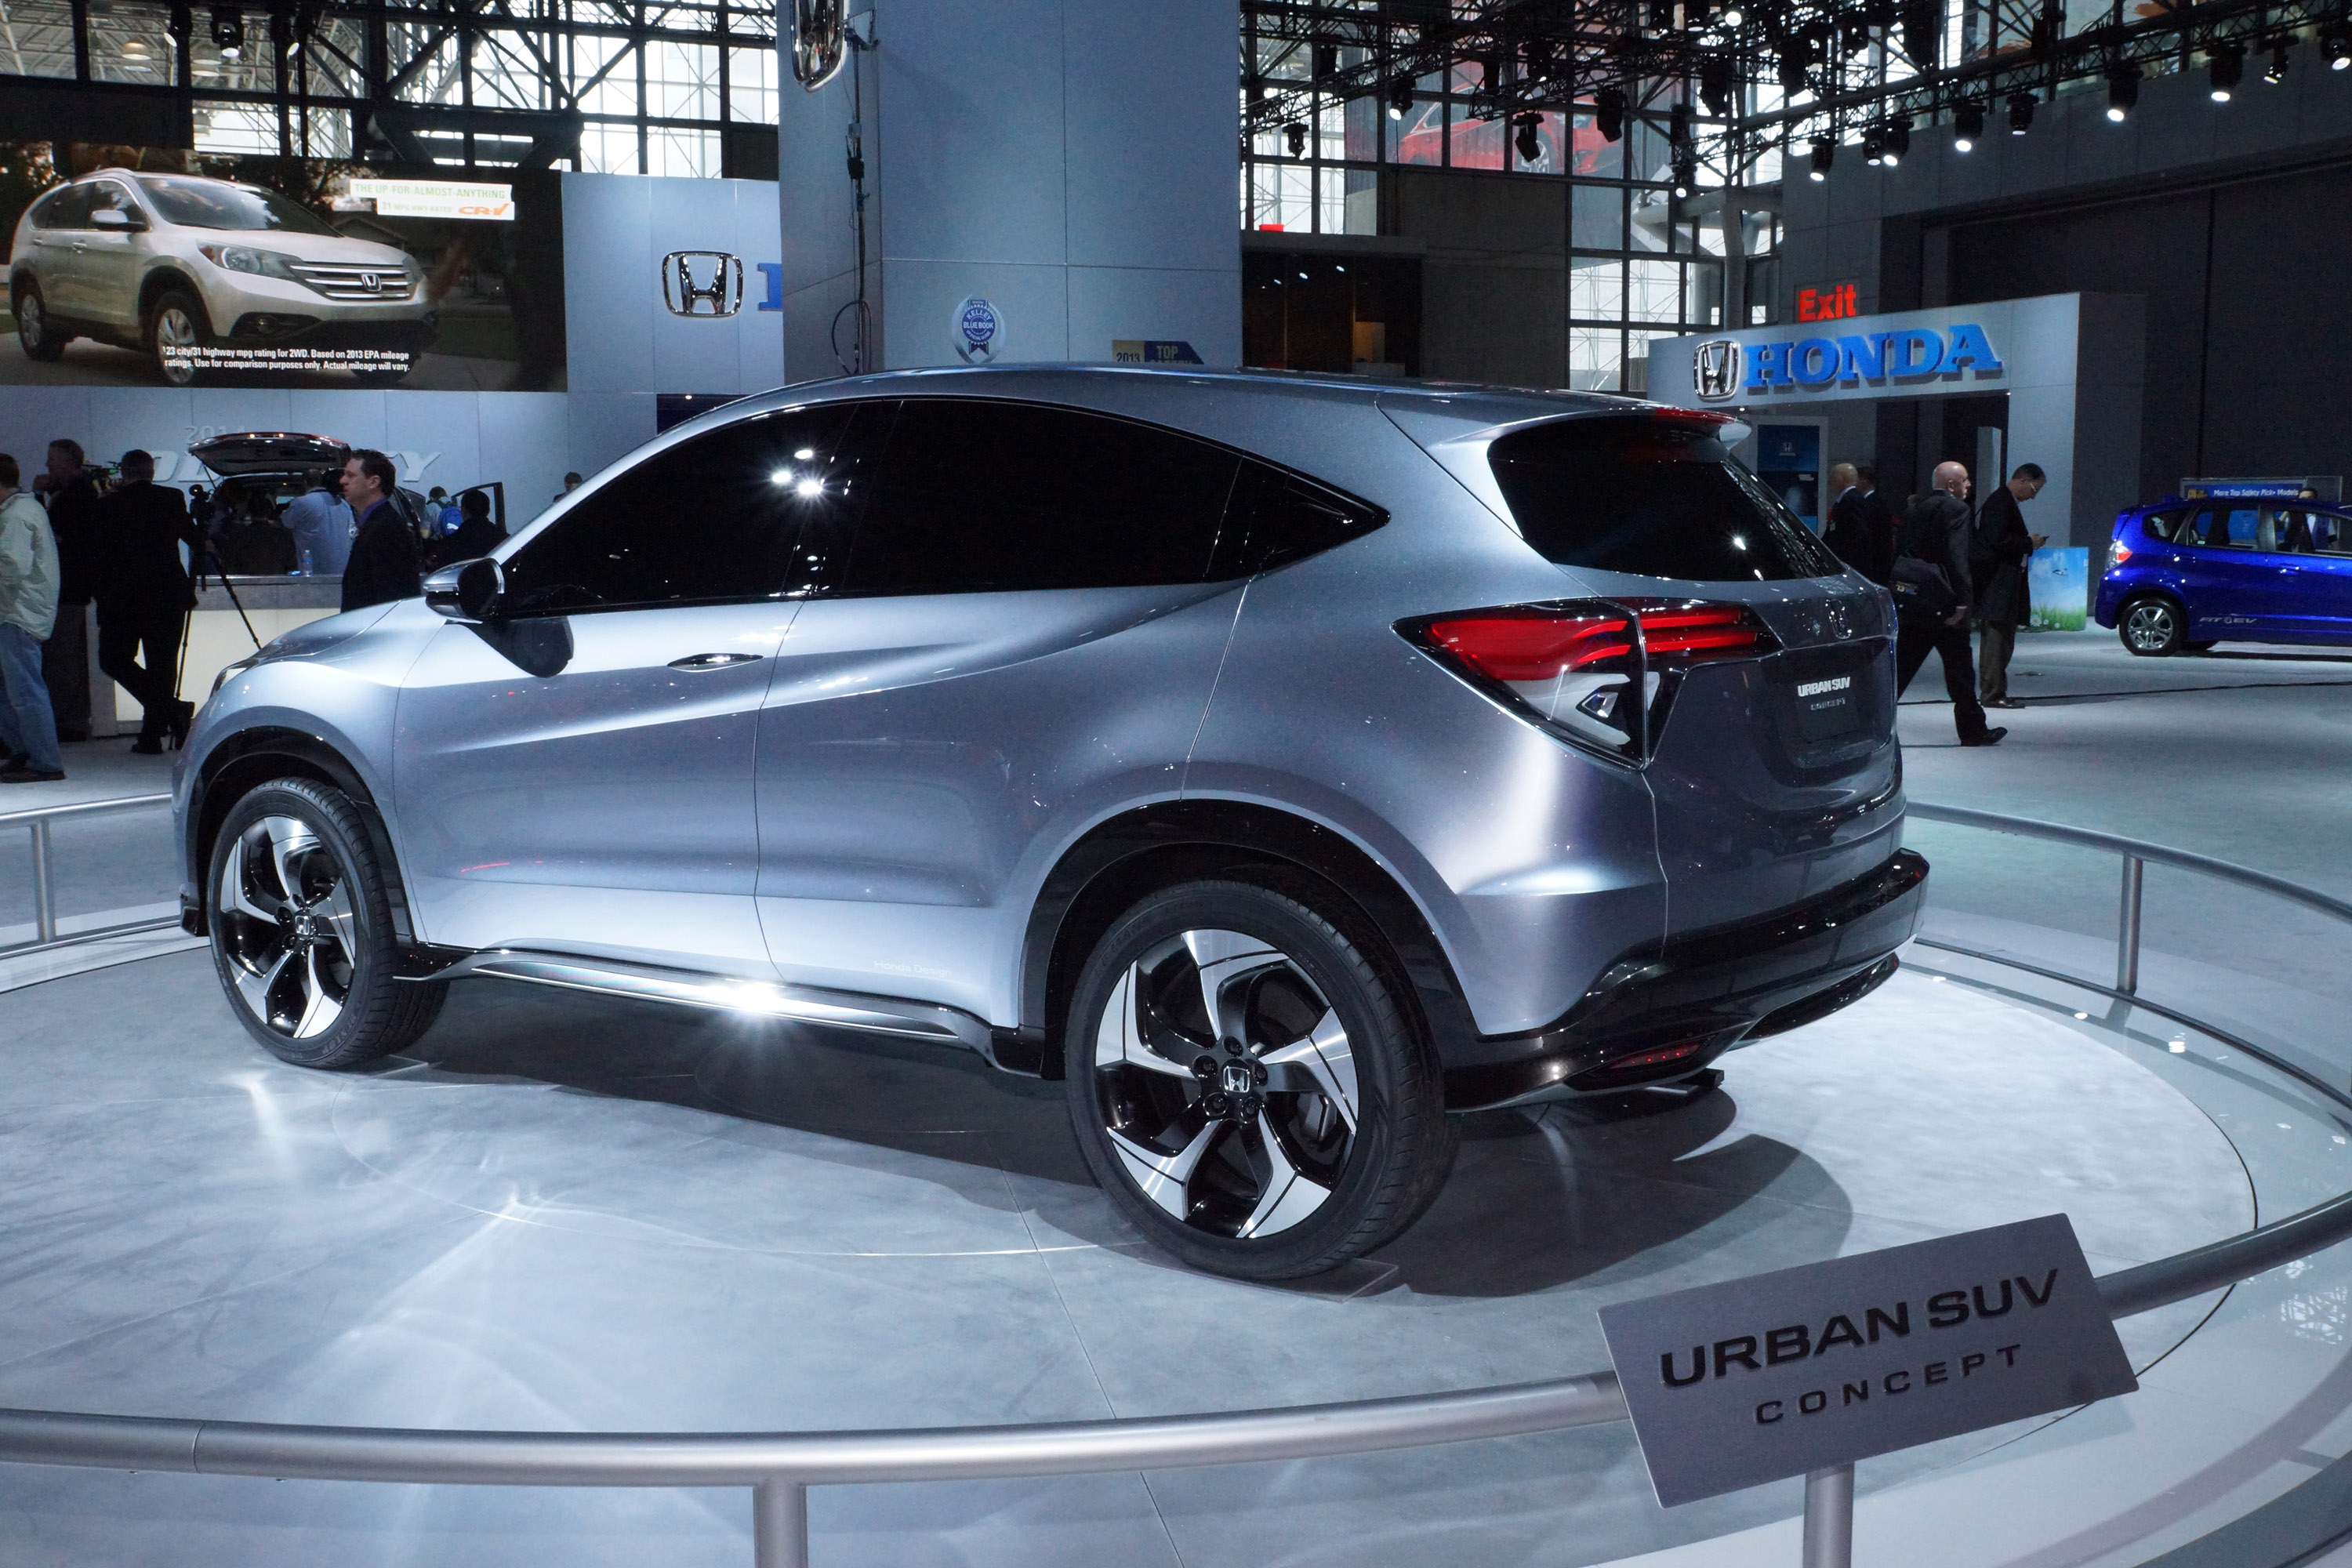 2019 Kia Kee Concept photo - 1